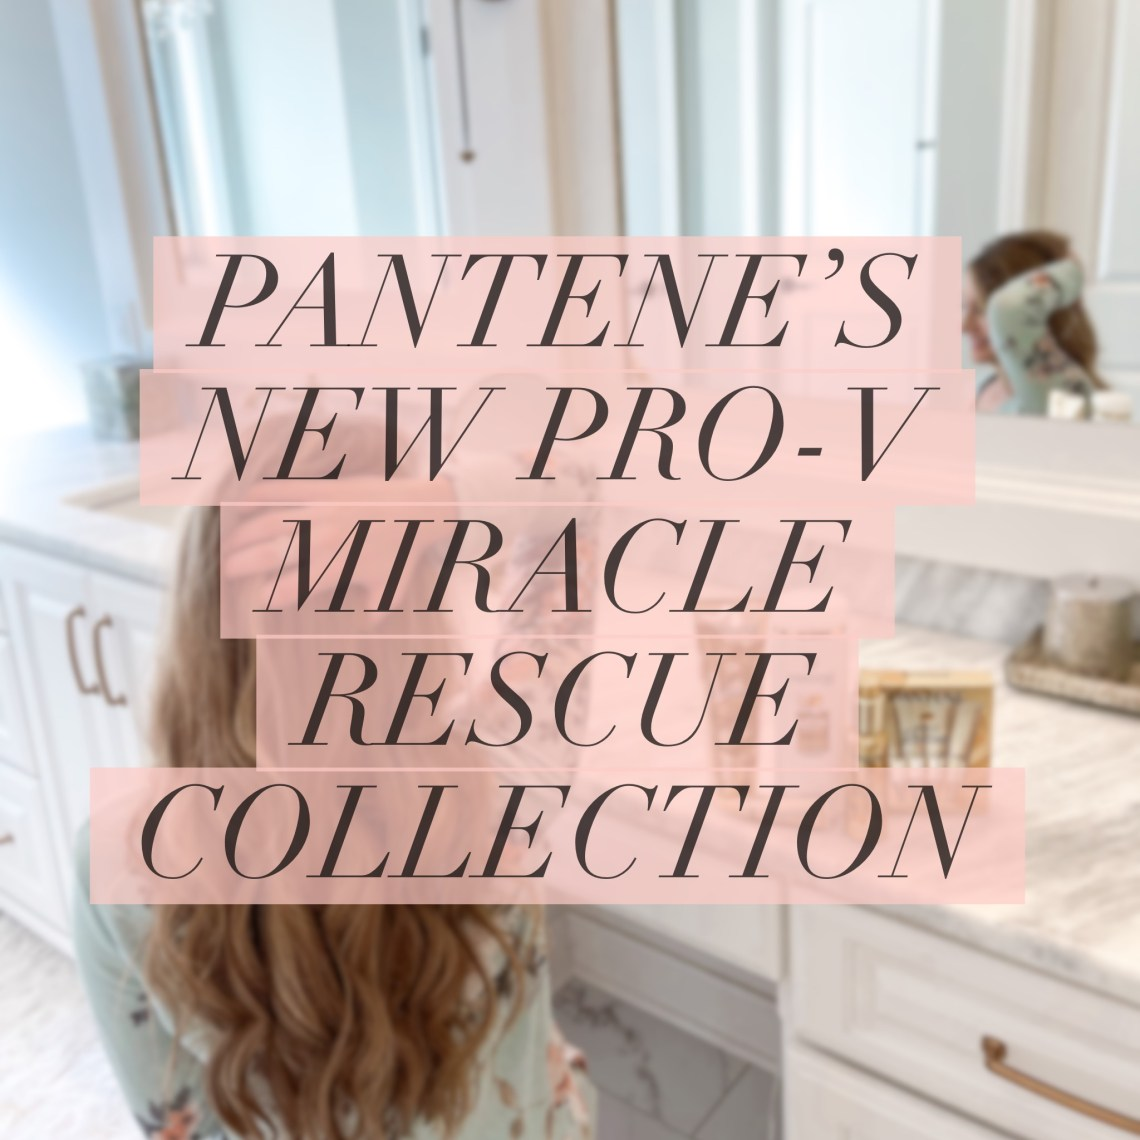 IMG 6470 - Pantene Pro-V Miracle Rescue Collection